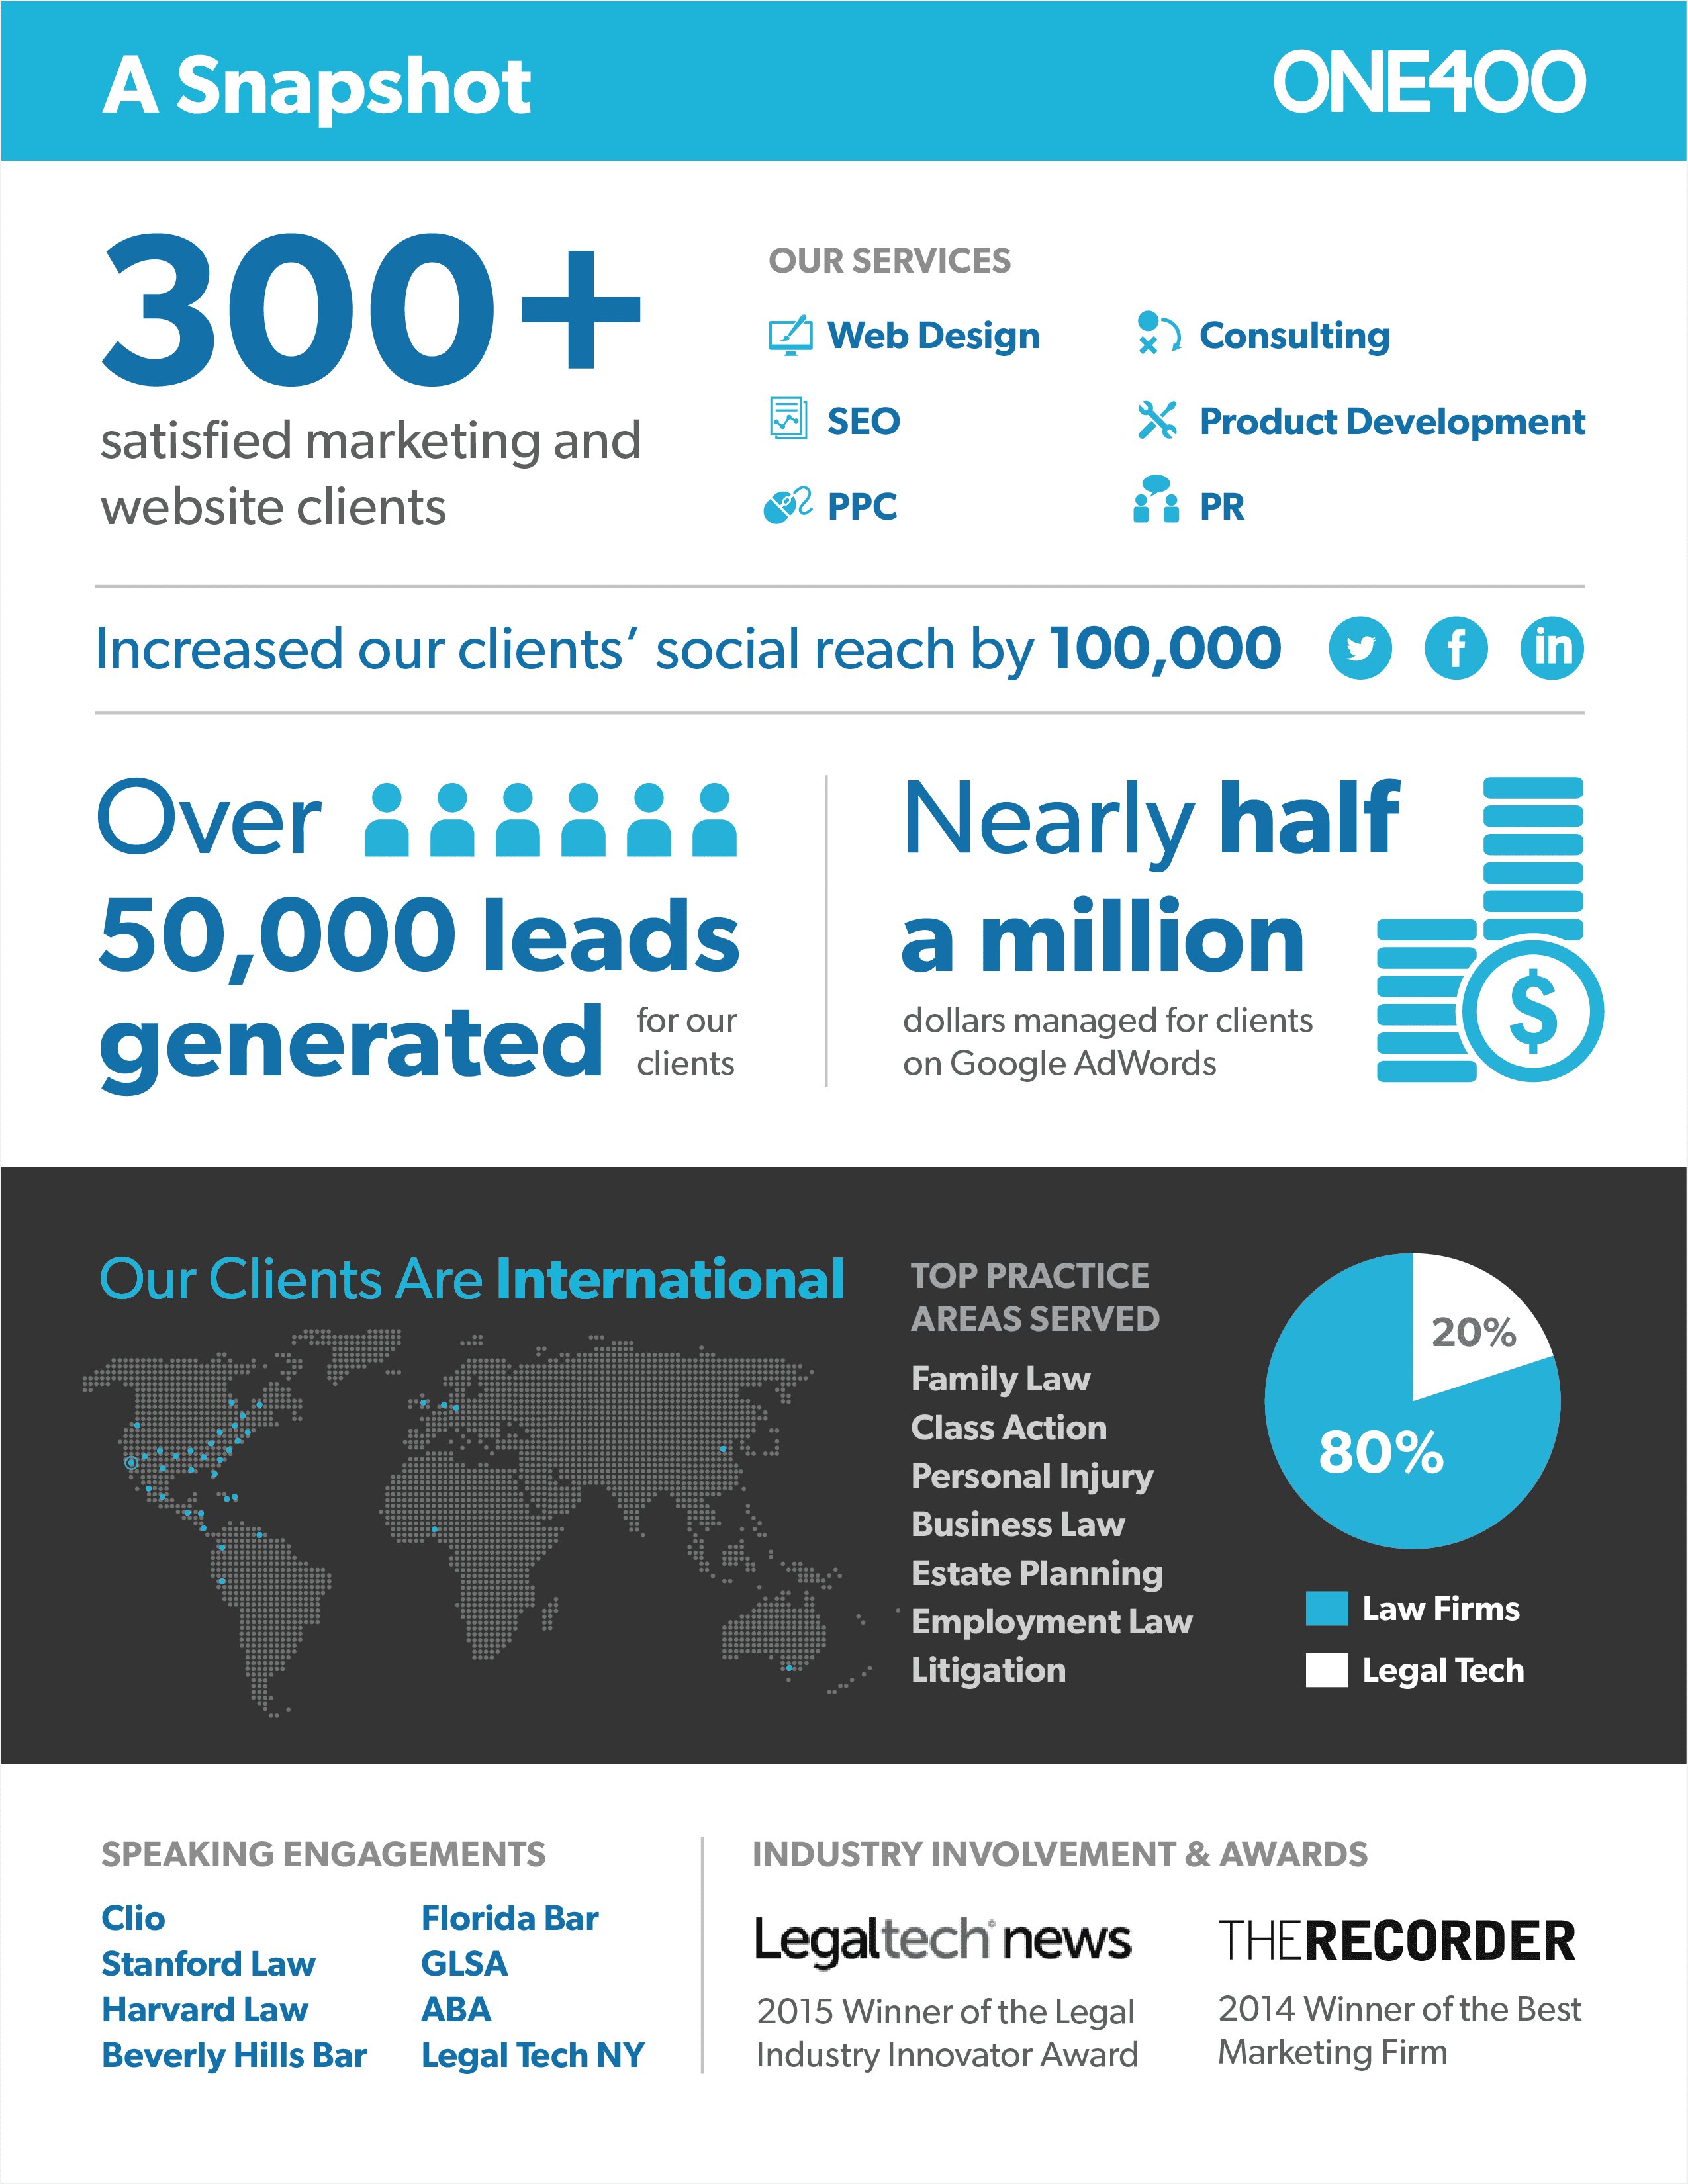 ONE400-infographic